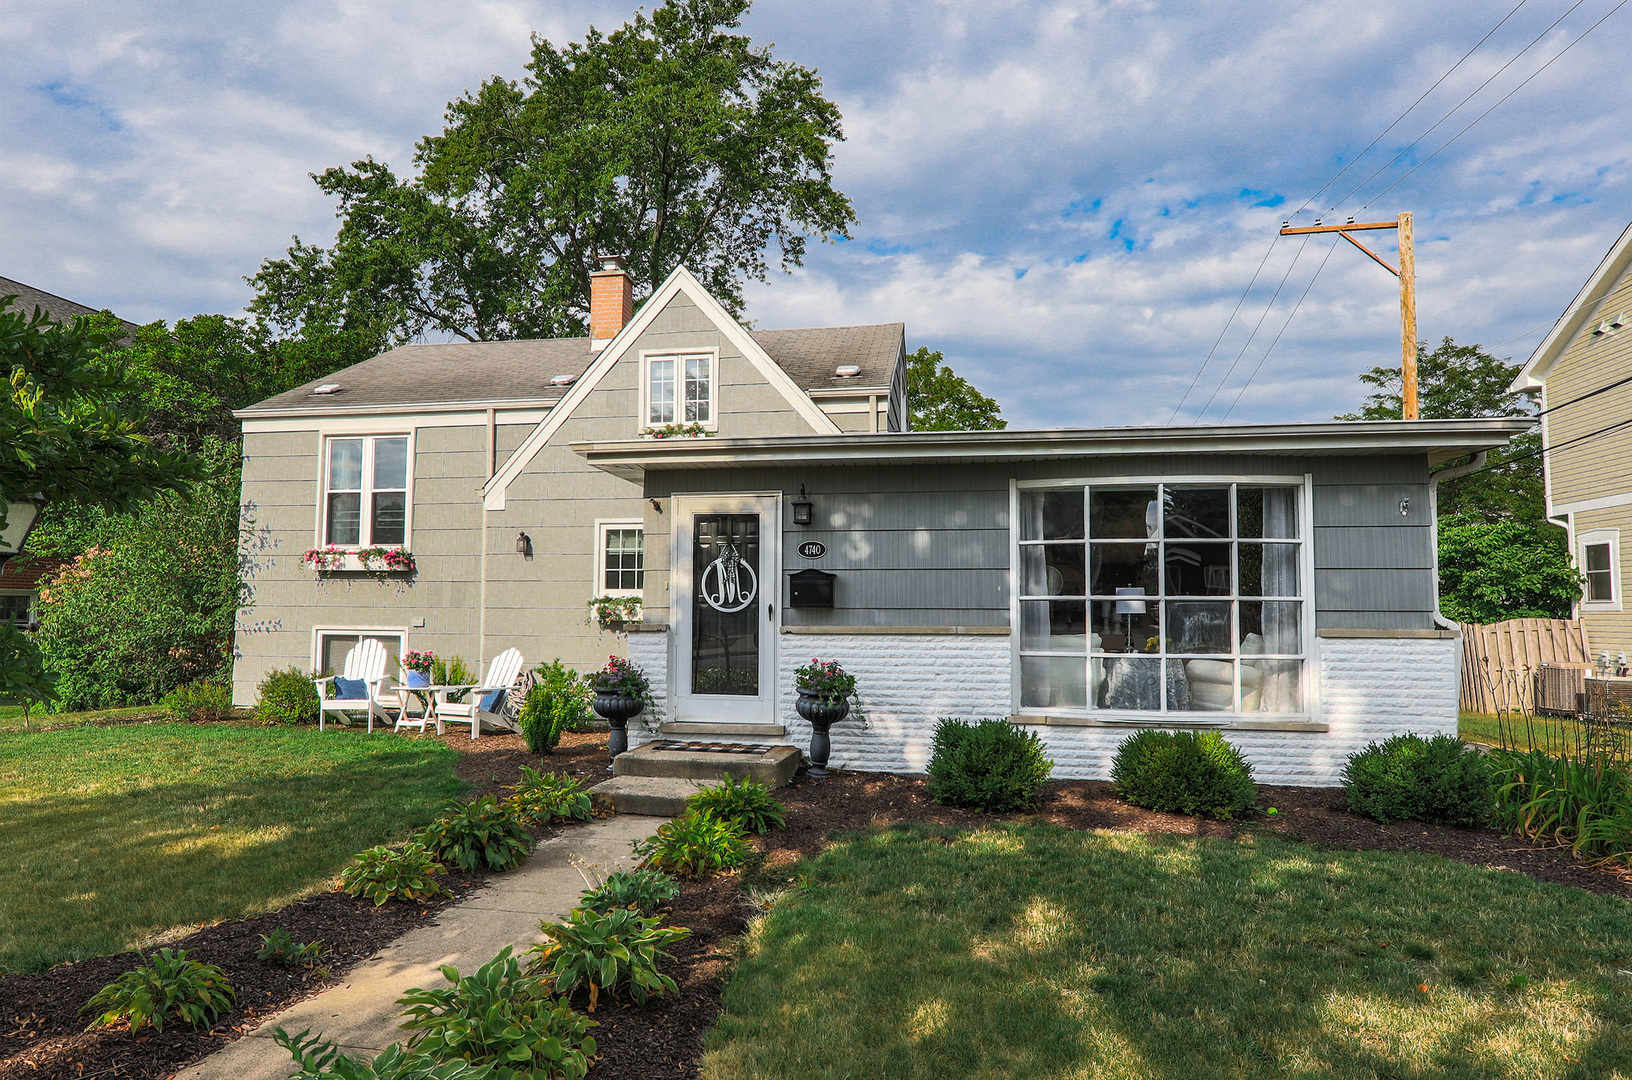 Photo for 4740 Douglas Road, Downers Grove, IL 60515 (MLS # 10860299)